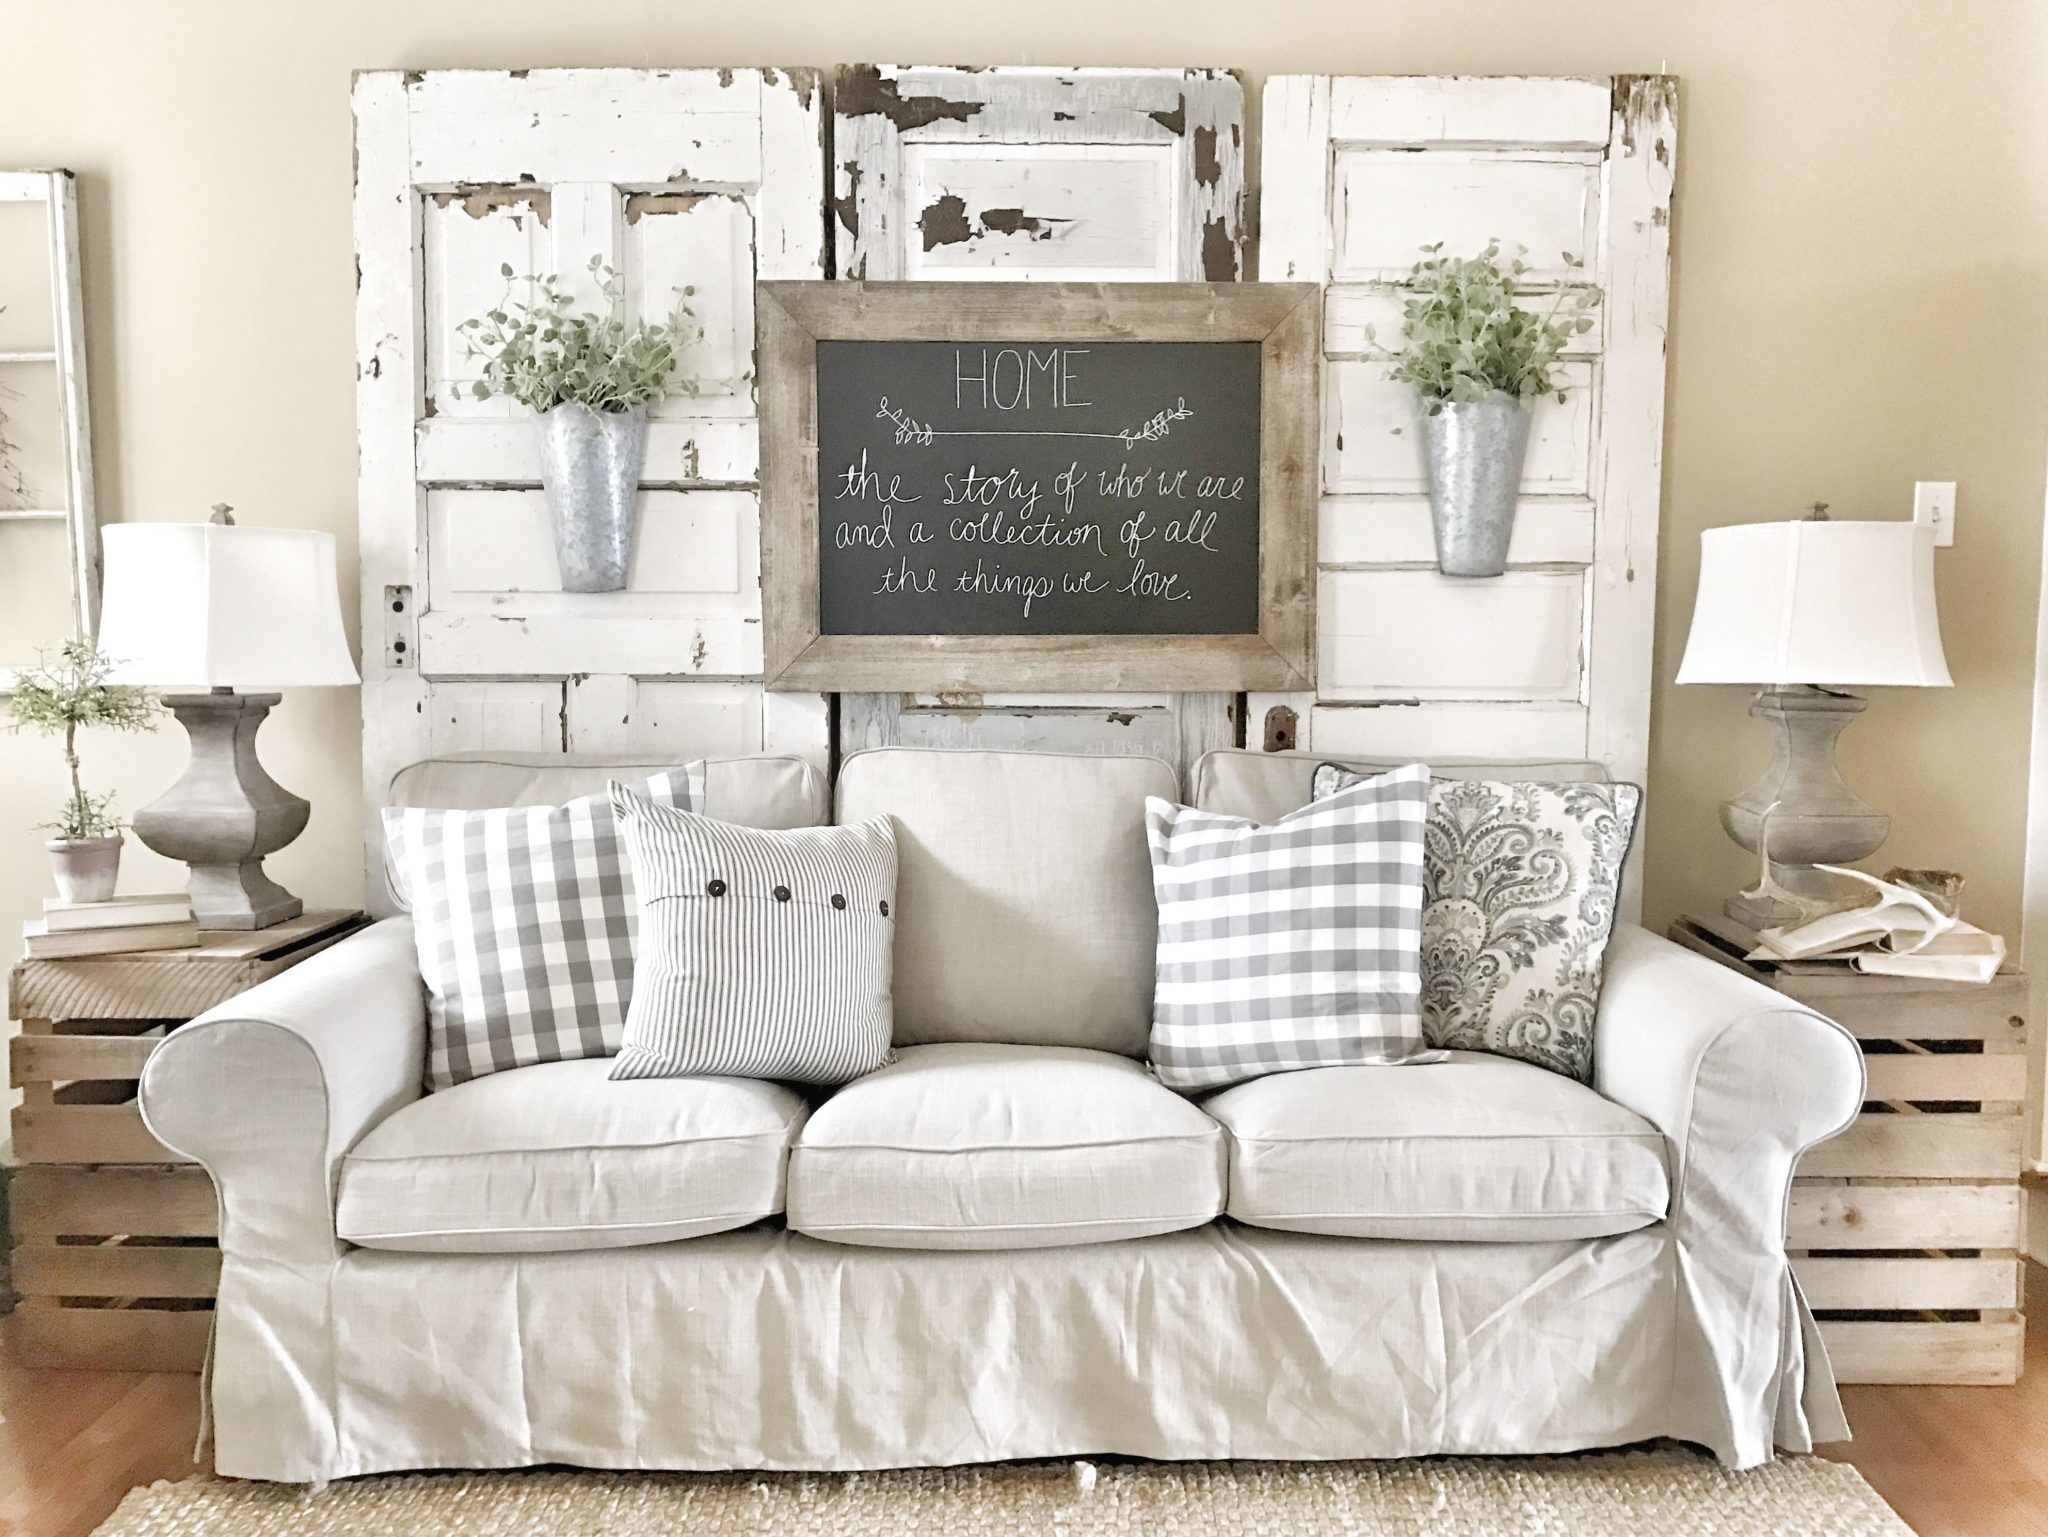 Small living room in shabby chic style.  Source: i.pinimg.com